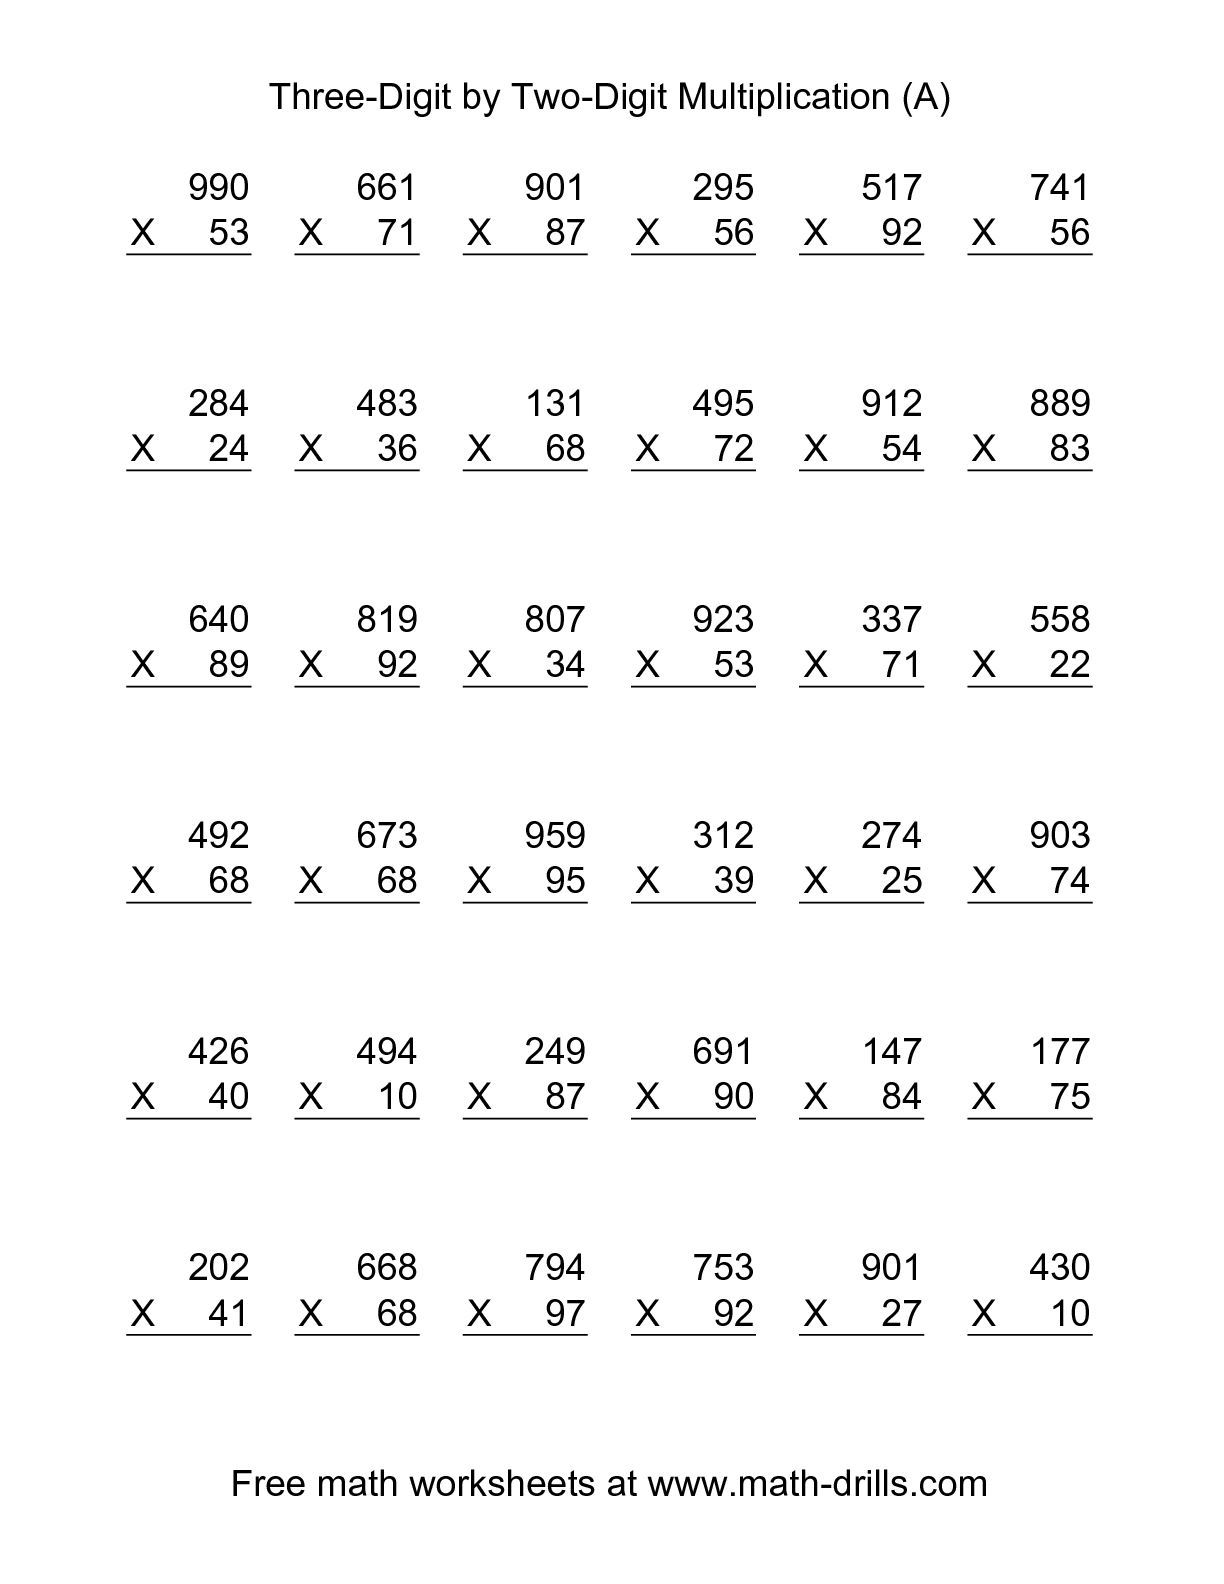 worksheet 2 By 2 Digit Multiplication Worksheets the multiplying three digit by two 36 per page a math multiplication worksheet per